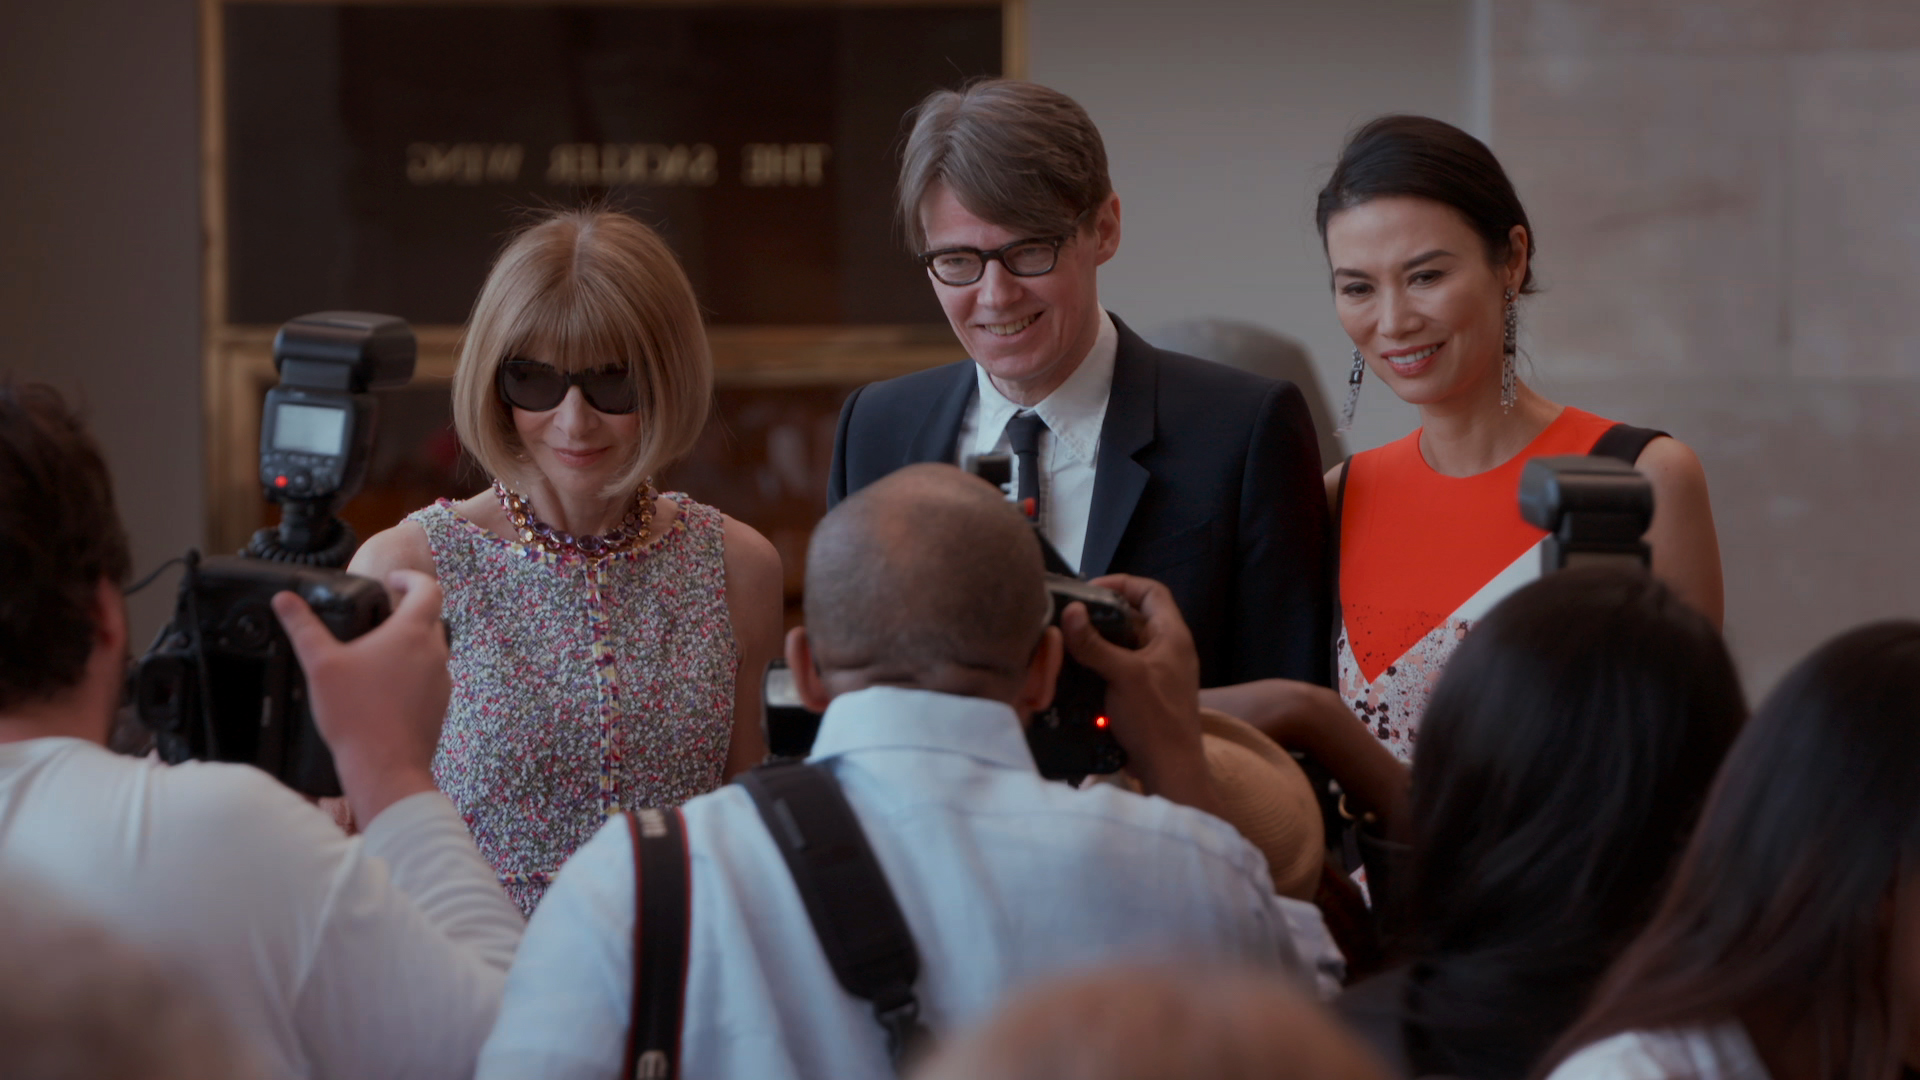 Anna Wintour, Andrew Bolton and Wendi Murdoch in The First Monday in May